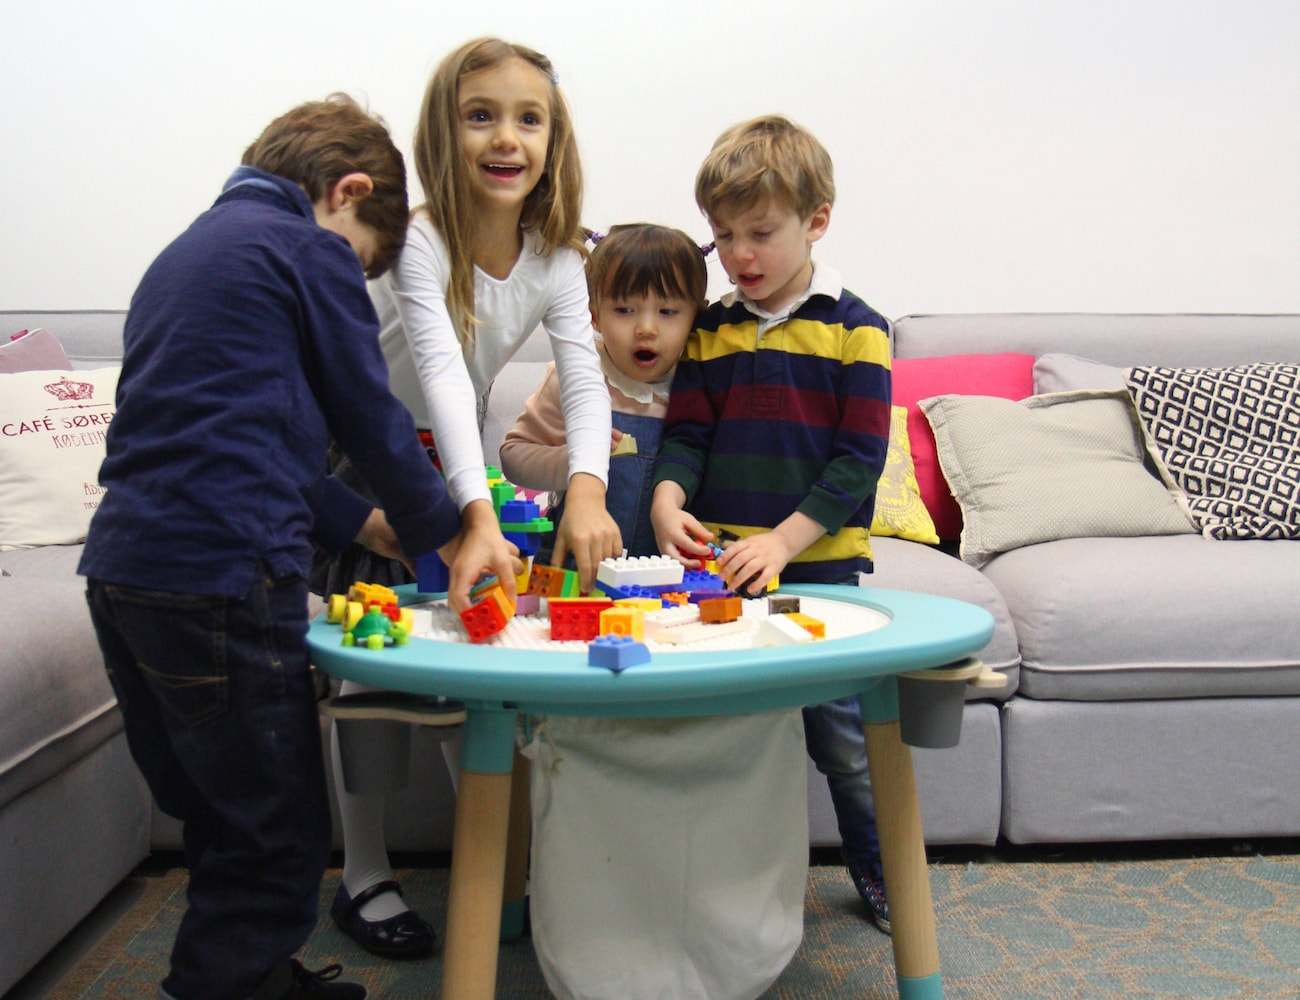 Childrens Play Table Mutable 2 Modular Childrens Play Table Gadget Flow